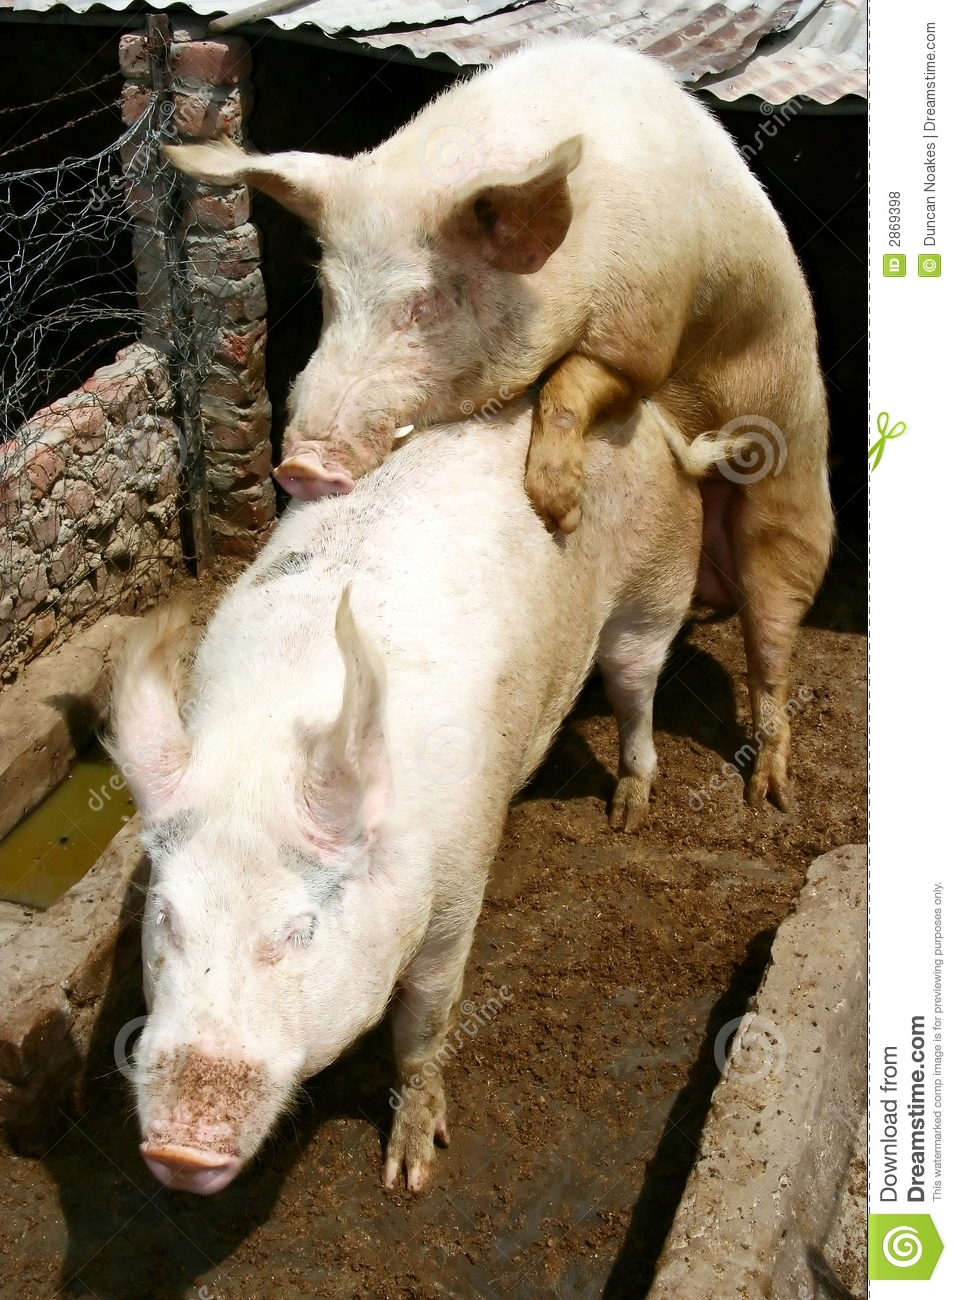 Mating Pigs Royalty Free Stock Photos - Image: 2869398